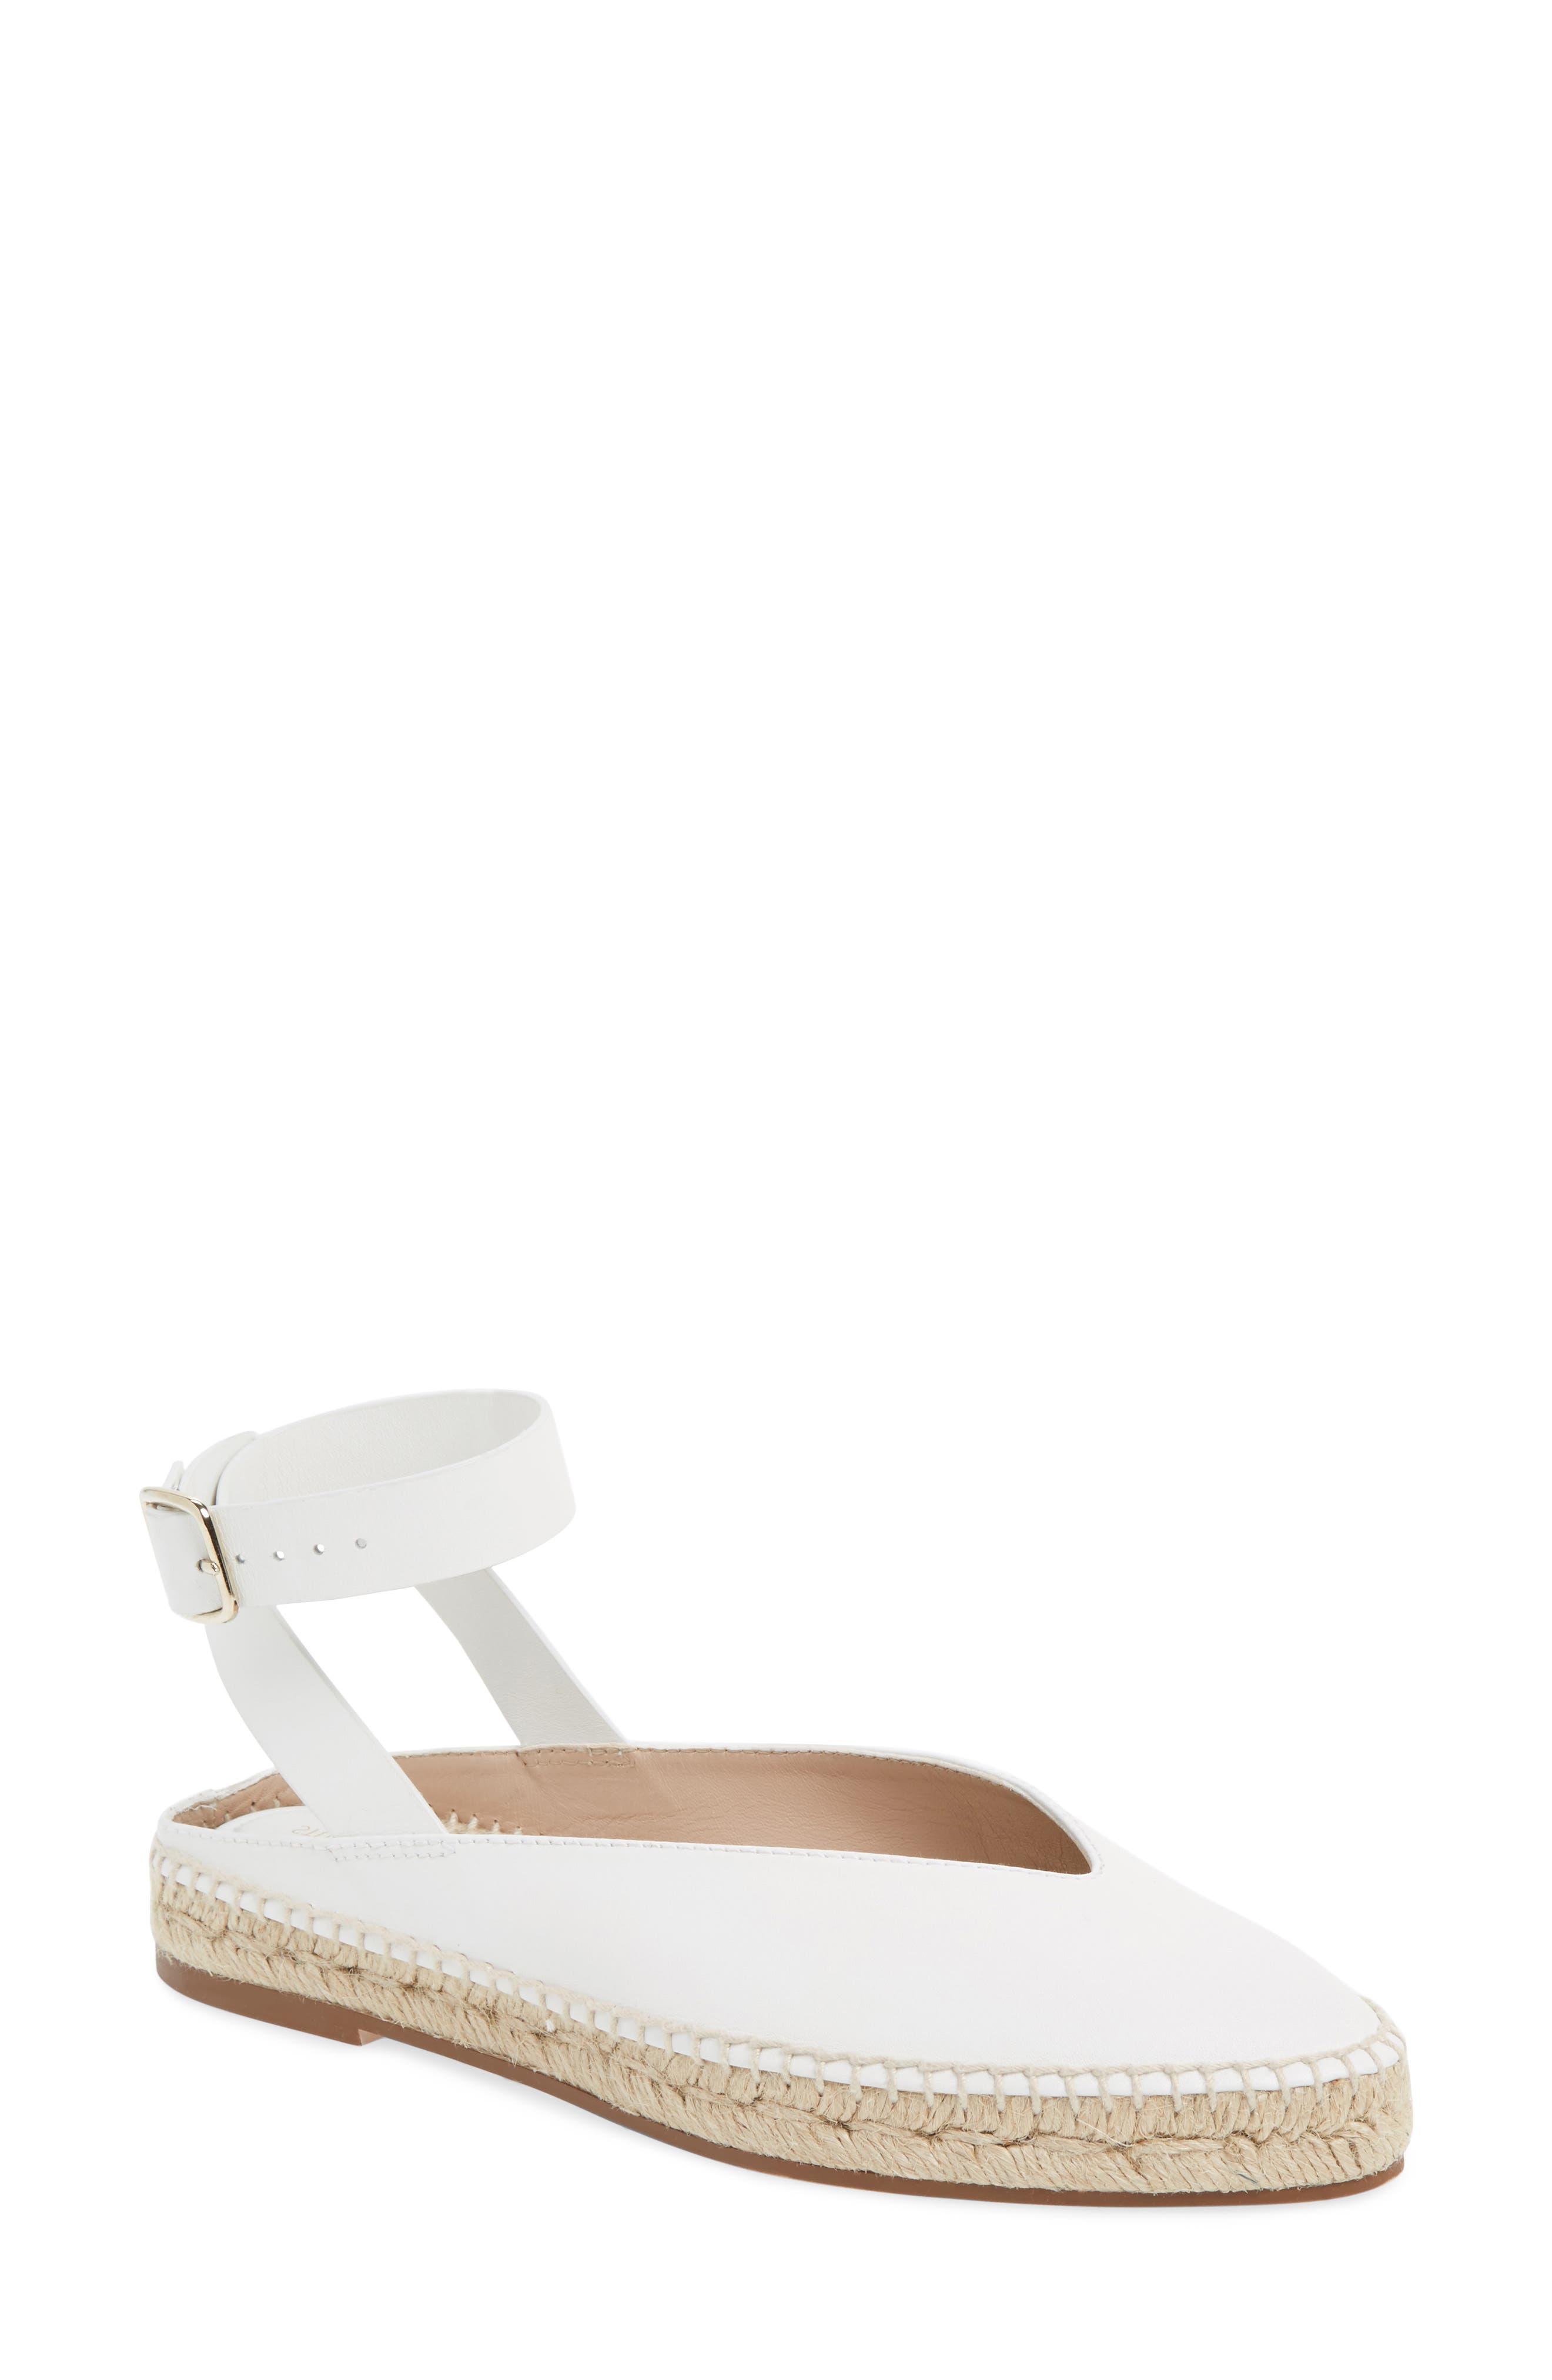 Toga Ankle Wrap Espadrille,                             Main thumbnail 1, color,                             Off White Arizona